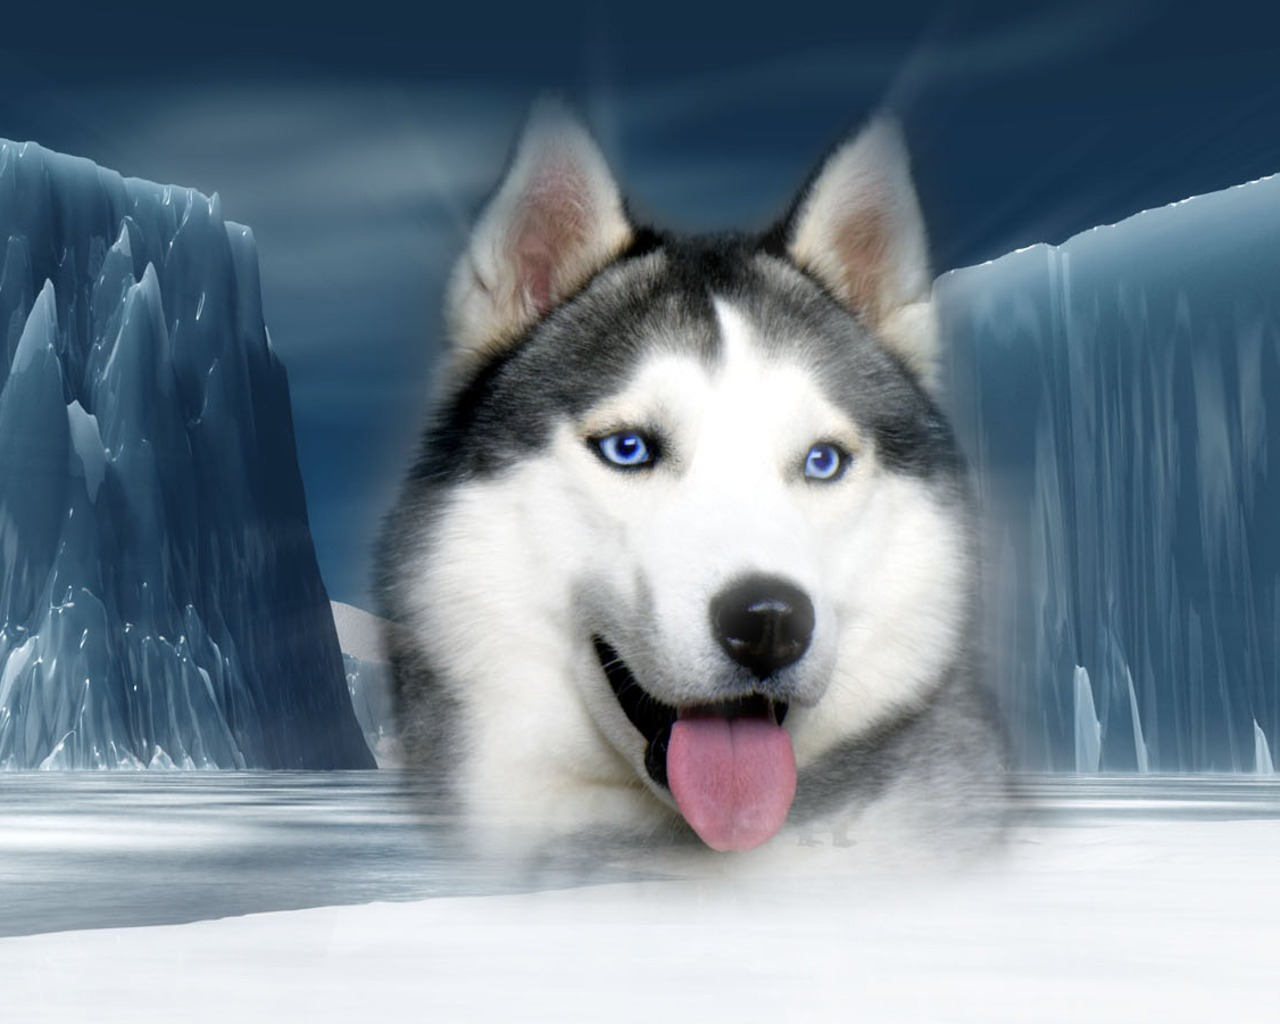 siberian Husky - Dogs Wallpaper (32502218) - Fanpop: www.fanpop.com/clubs/dogs/images/32502218/title/siberian-husky...